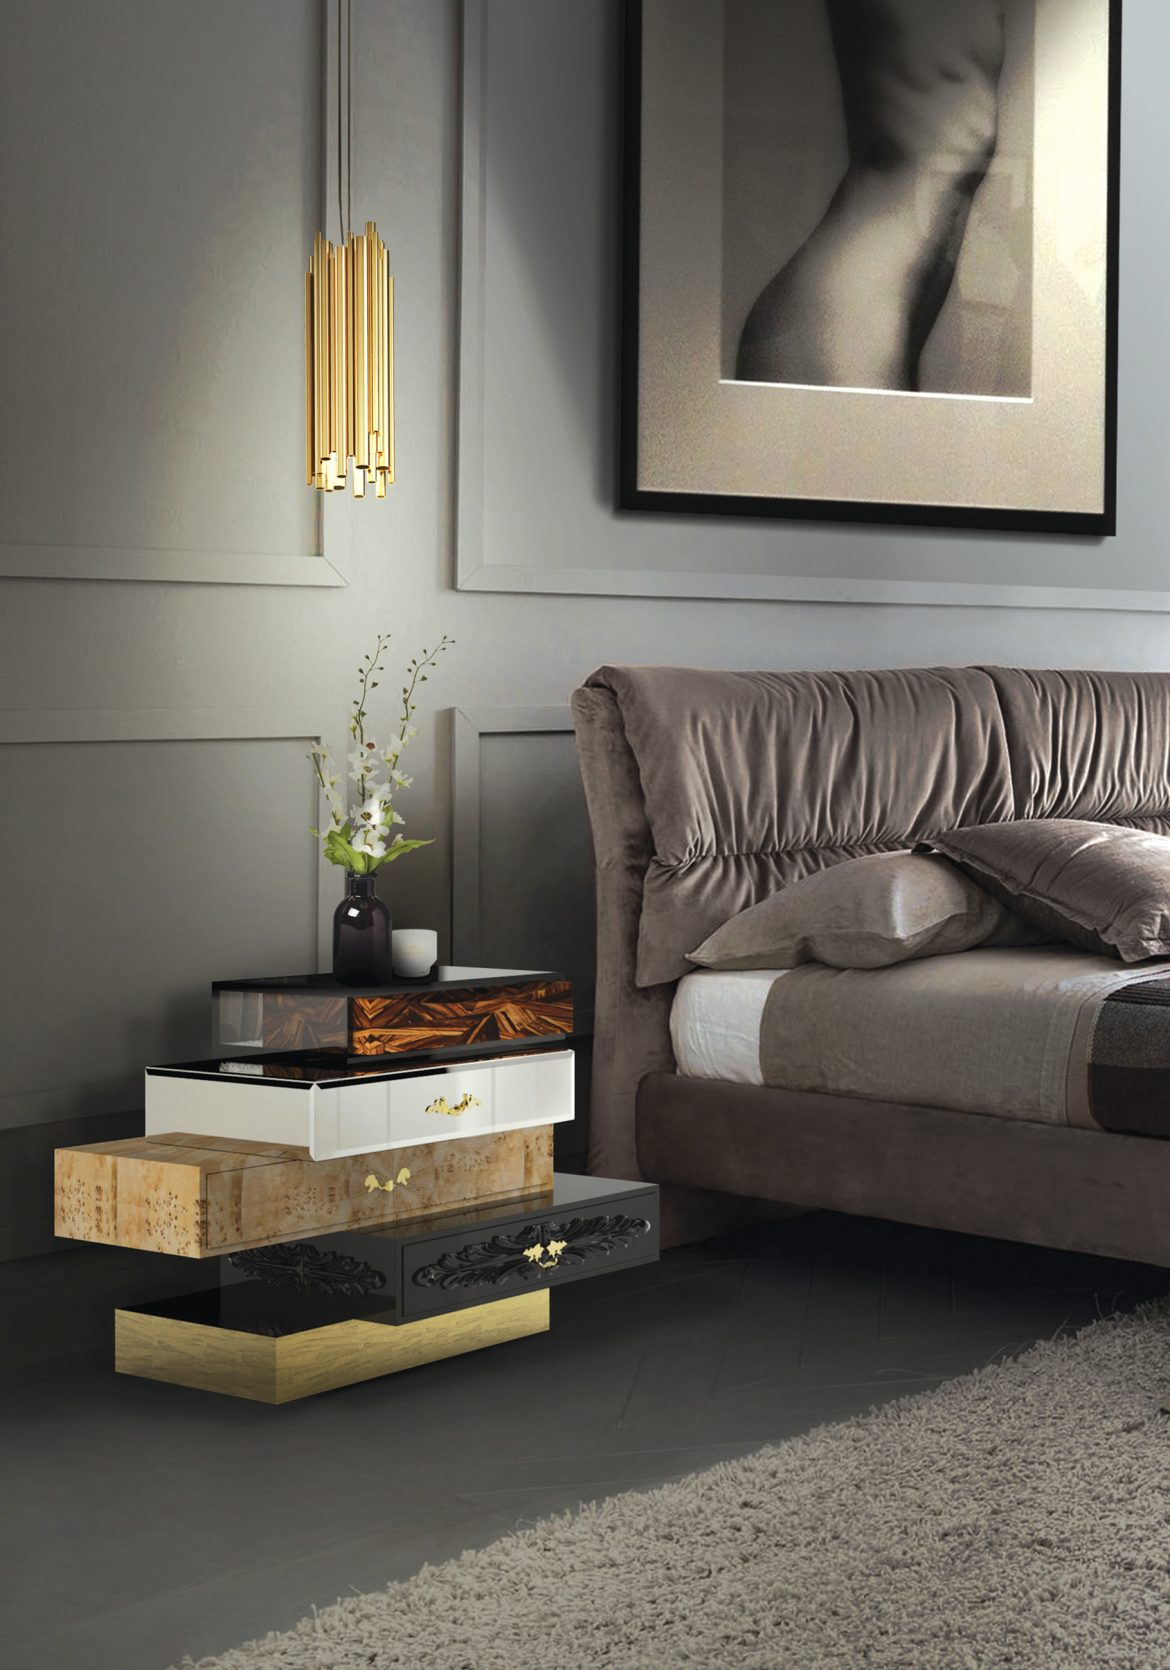 7 Bedside Tables Ideas That Make Your Bedroom Decor More Functional